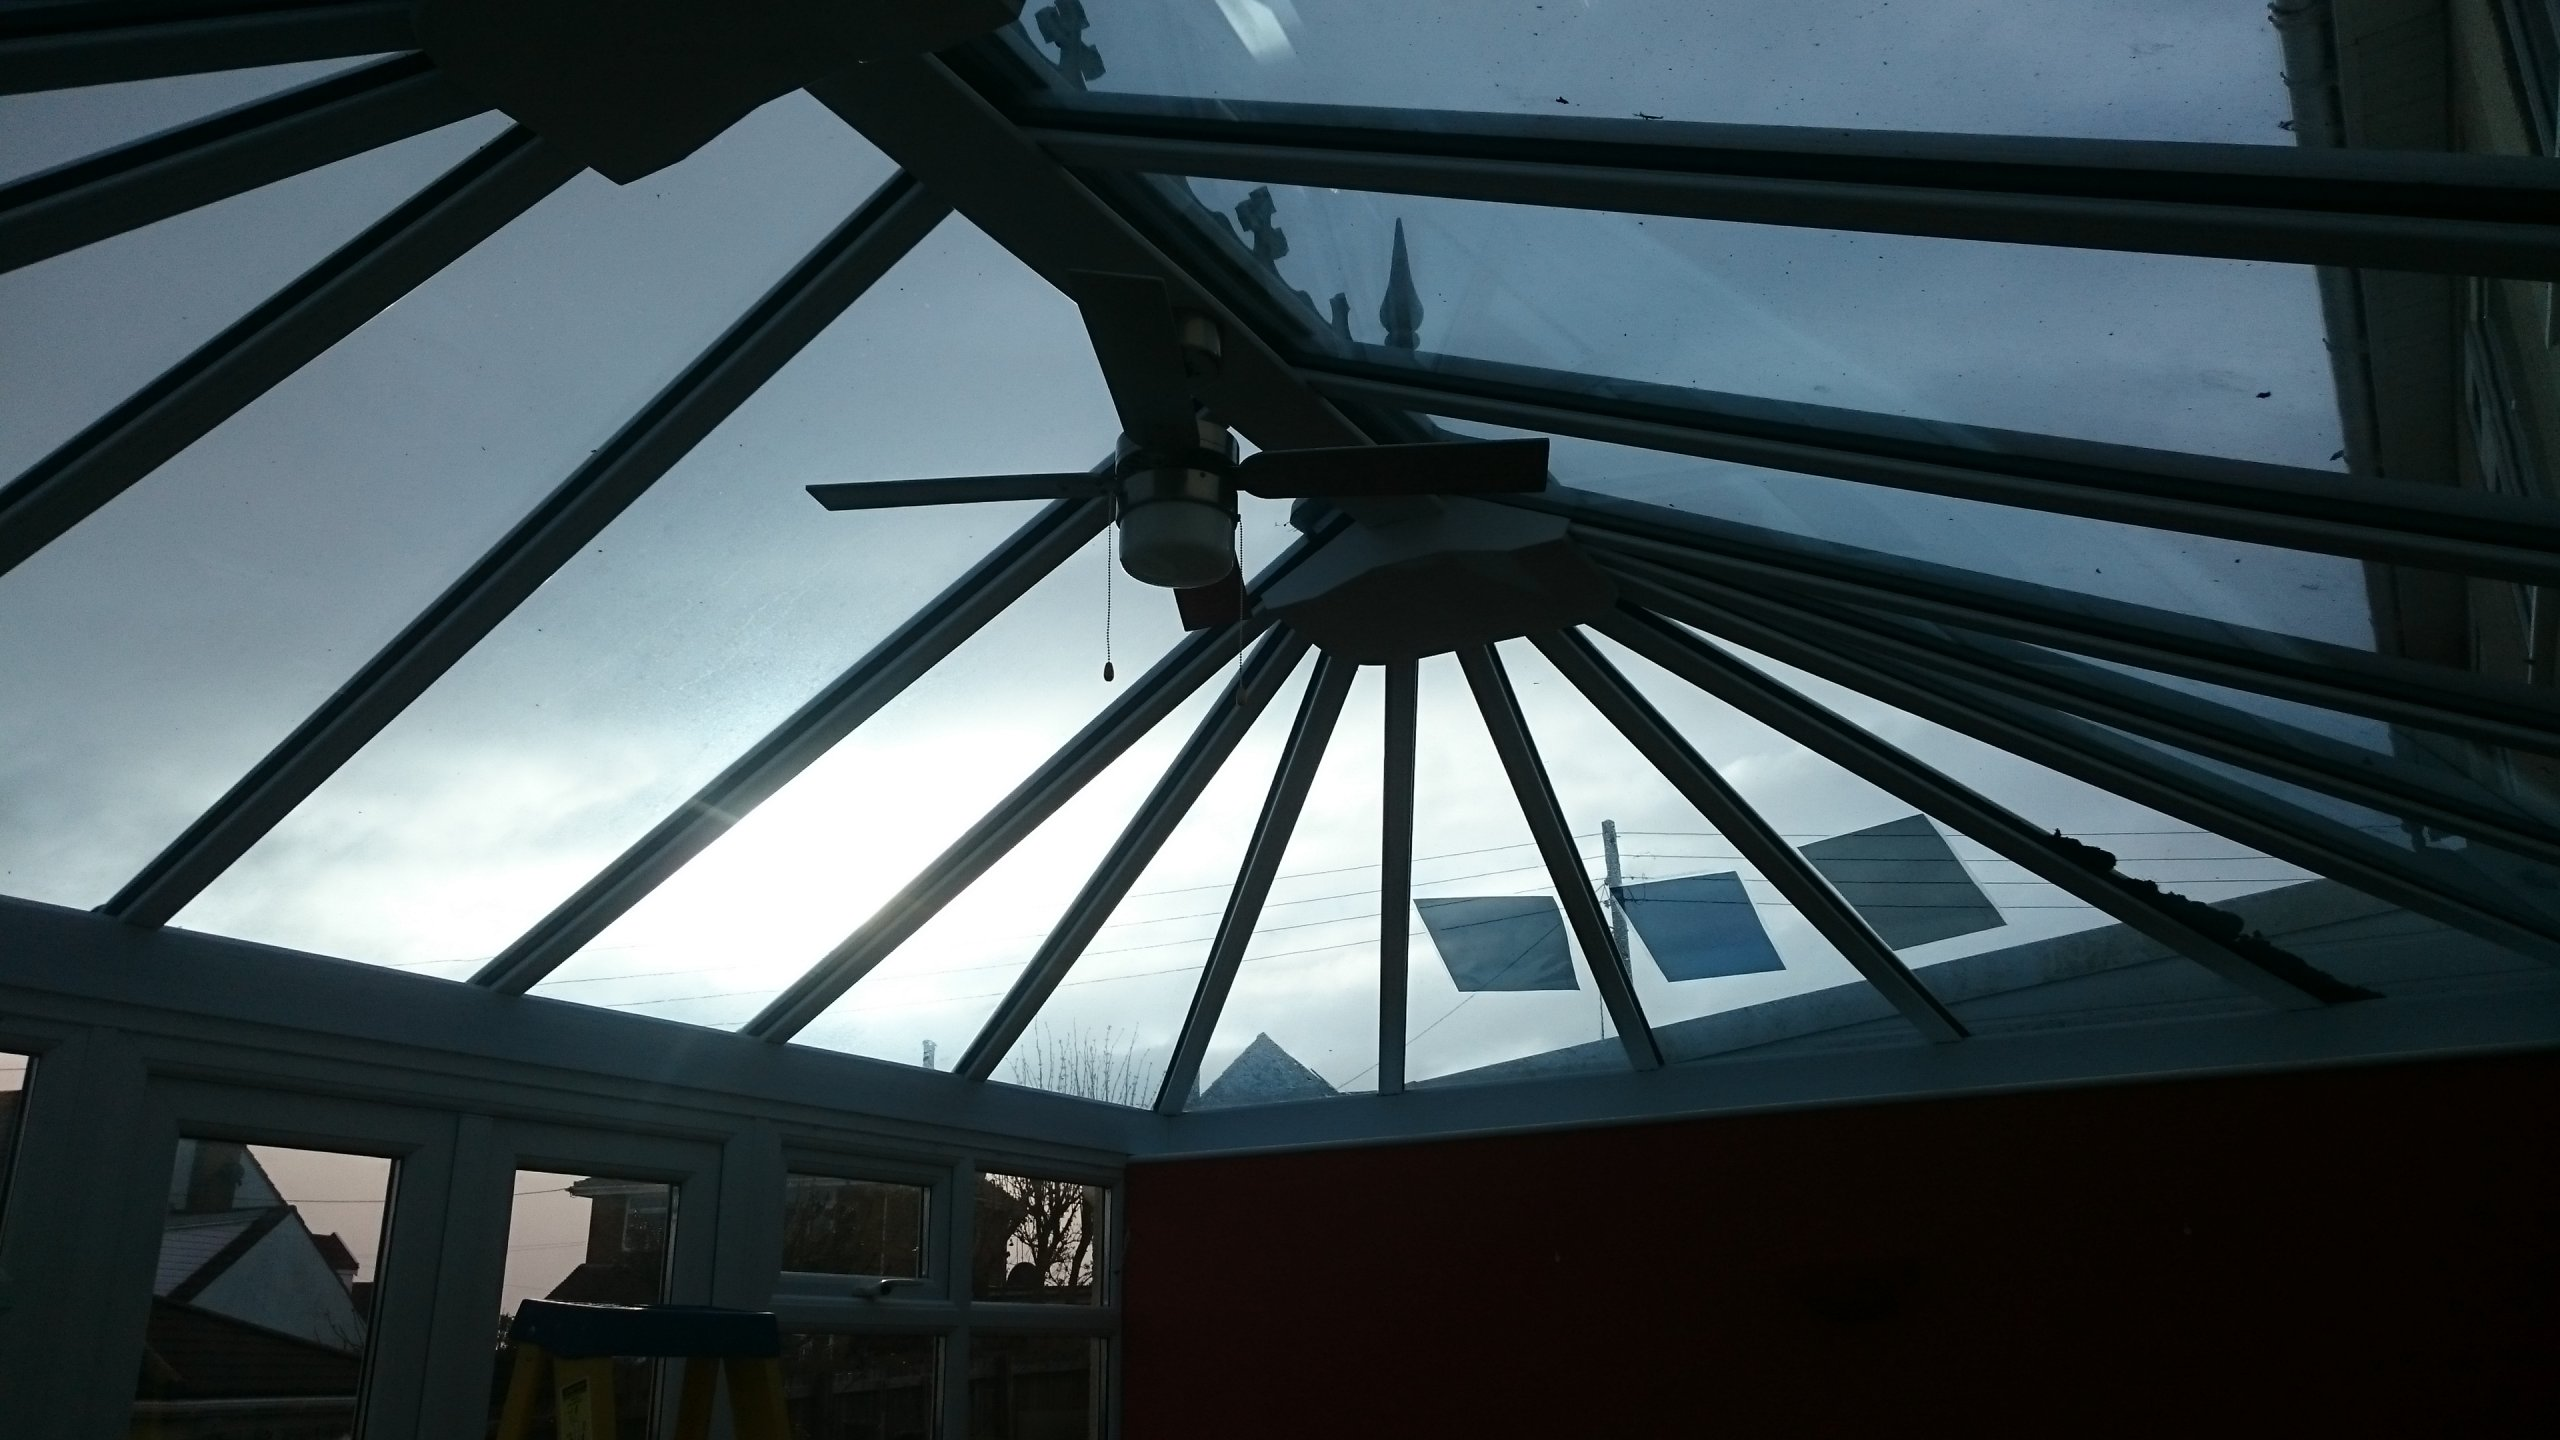 Samples applied to roof glass on conservatory roof awaiting solar window film Dual 15 in Weston Super Mare Somerset . Tinting Express Devon